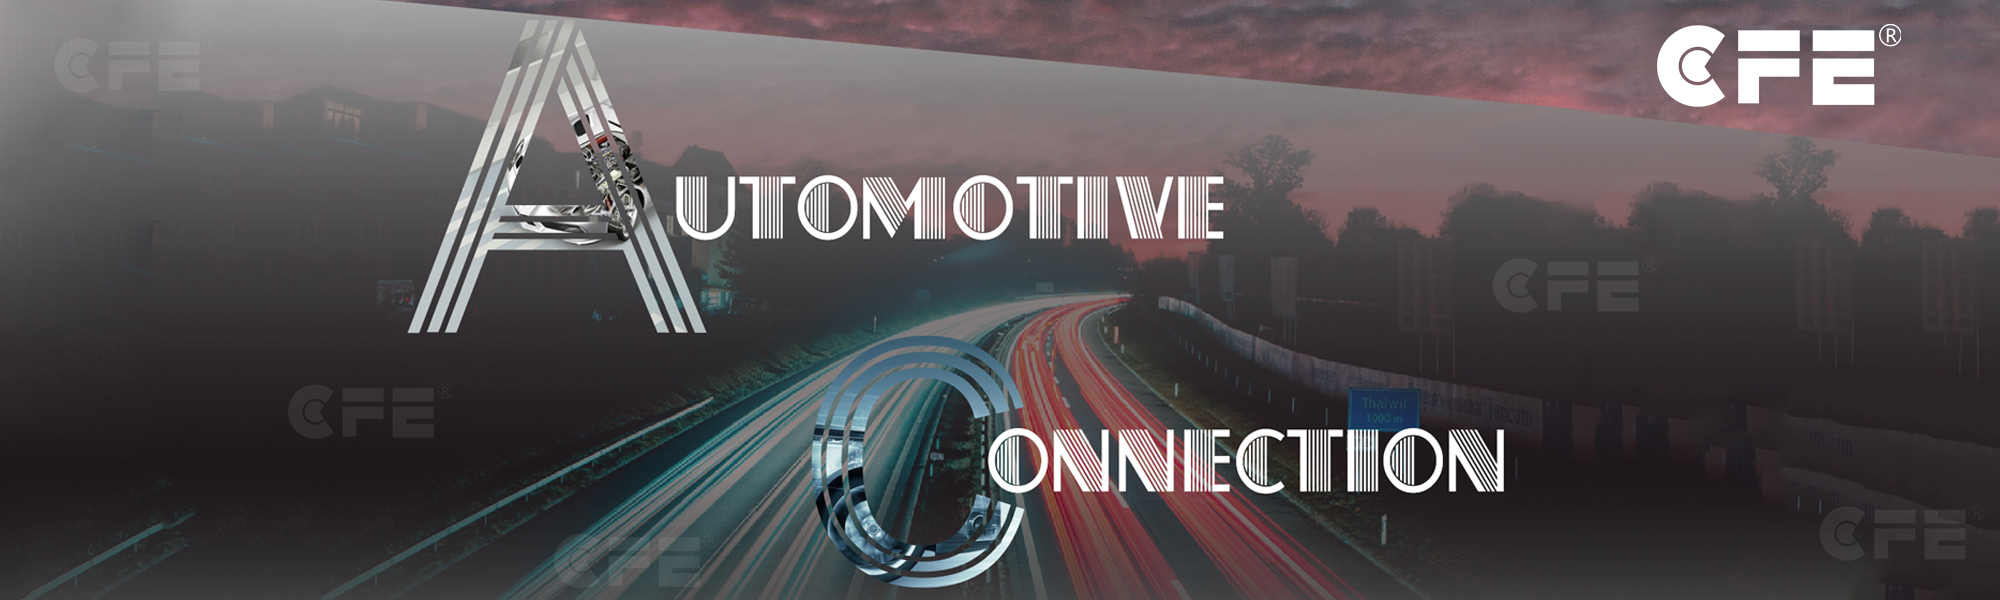 Automotive Connection-Where are we driving to?